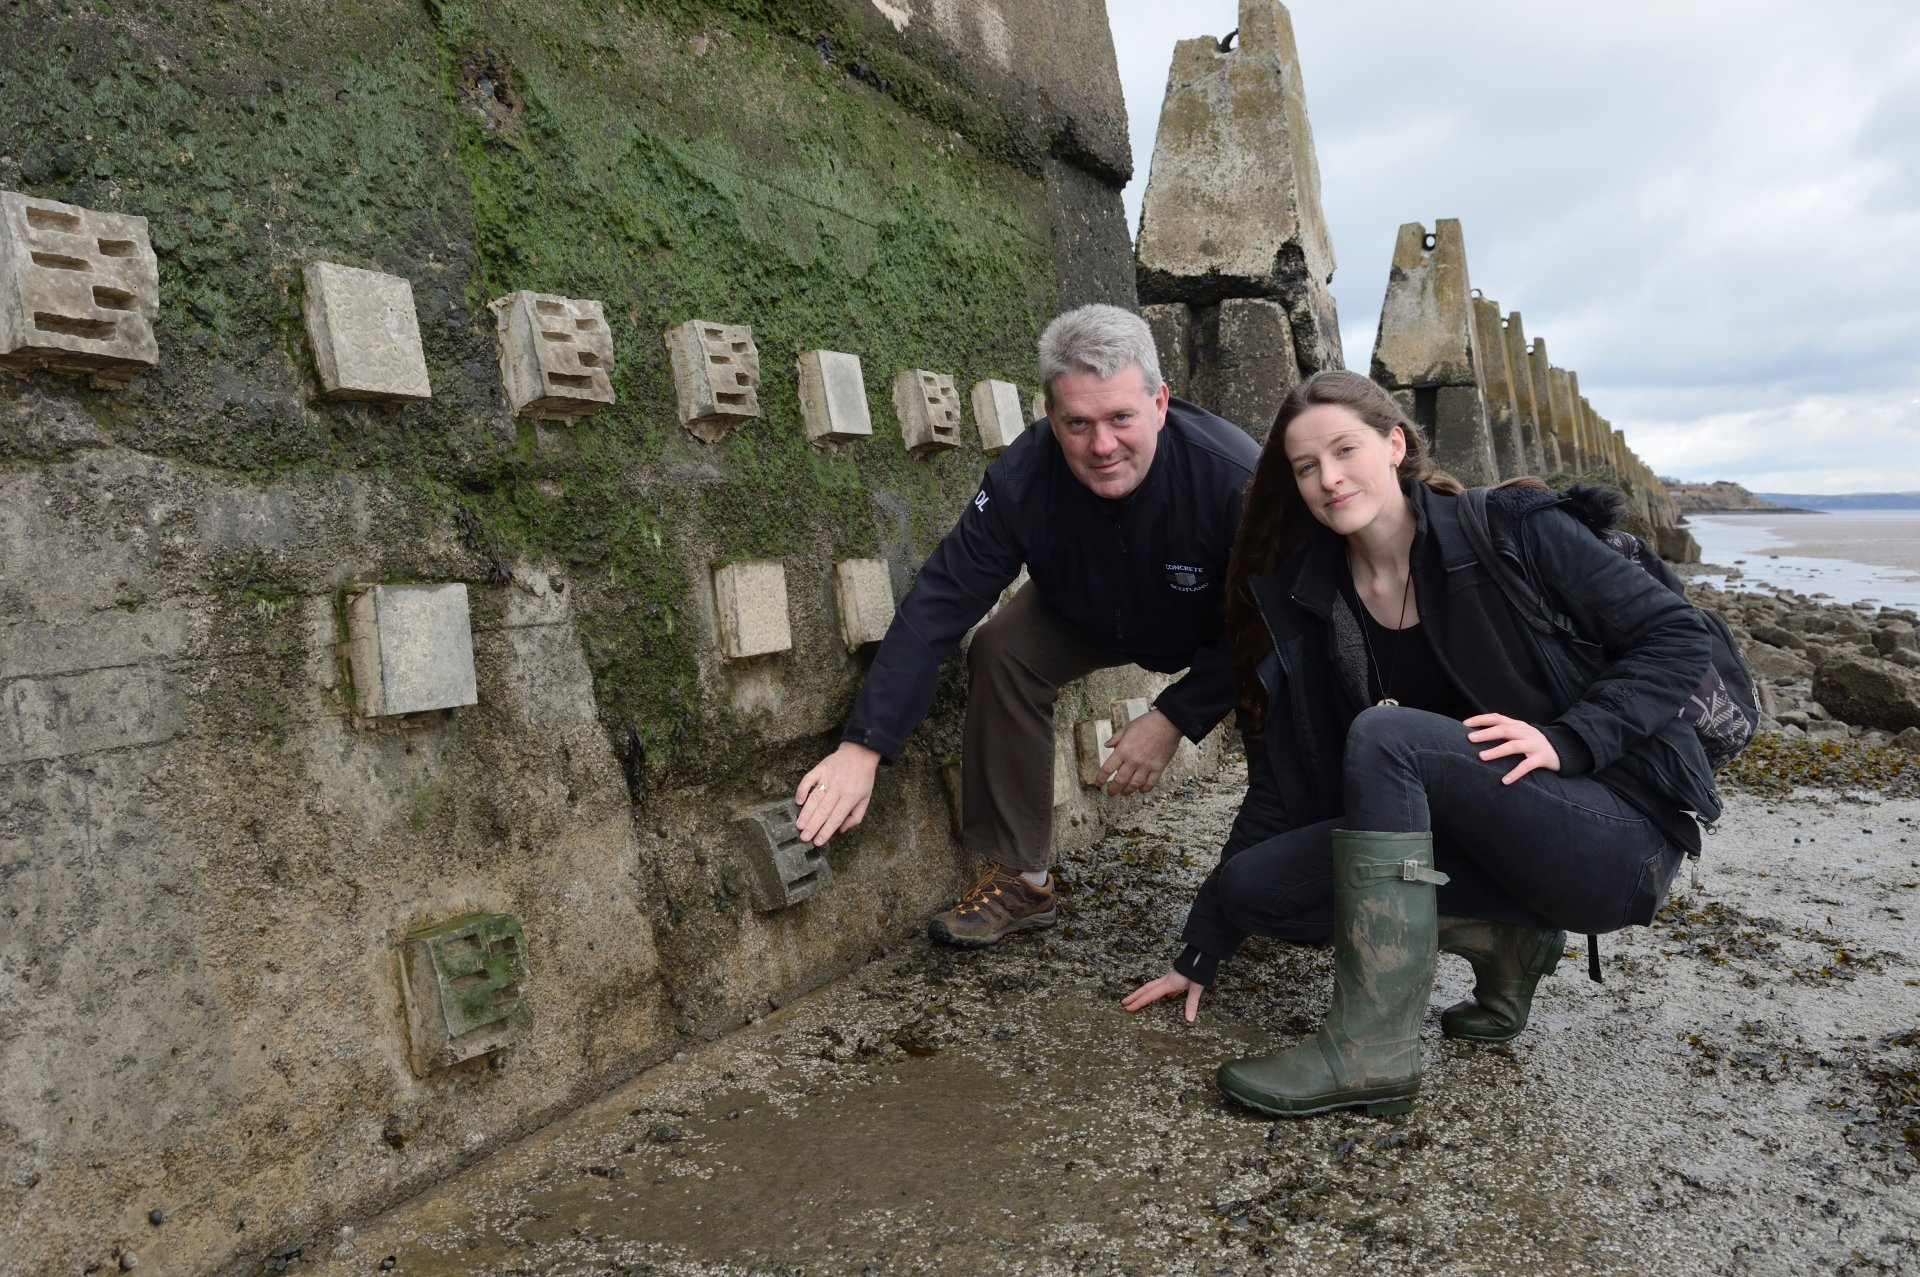 Dale Lyon Concrete in the Classroom) and Mairi MacArthur ( PhD student Glasgow Uni), standing beside some concrete habitat blocks installed on the sea defences at Cramond as part of the Concrete in the Classroom project. ©Lorne Gill/SNH